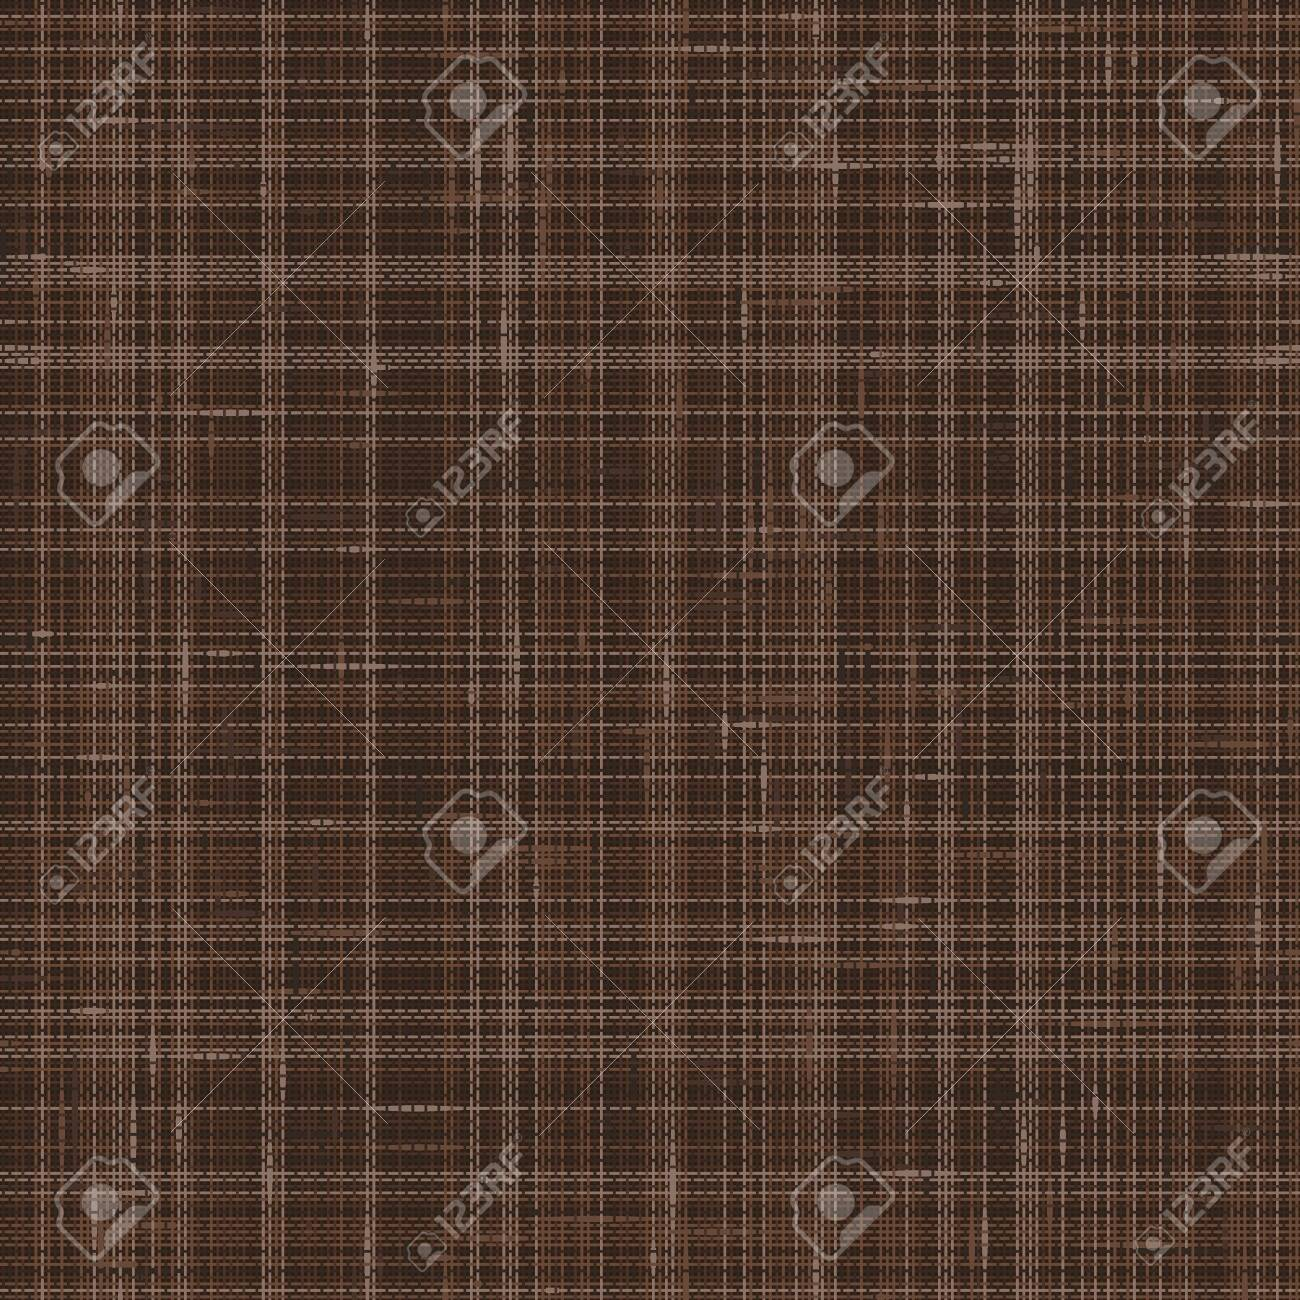 Dark Brown French Linen Texture Background. Variegated Flax Fibre Seamless Pattern. Organic Yarn Close Up Weave Faux Fabric for Wallpaper, Sack Cloth Packaging, Canvas. Vector EPS10 . - 135743545